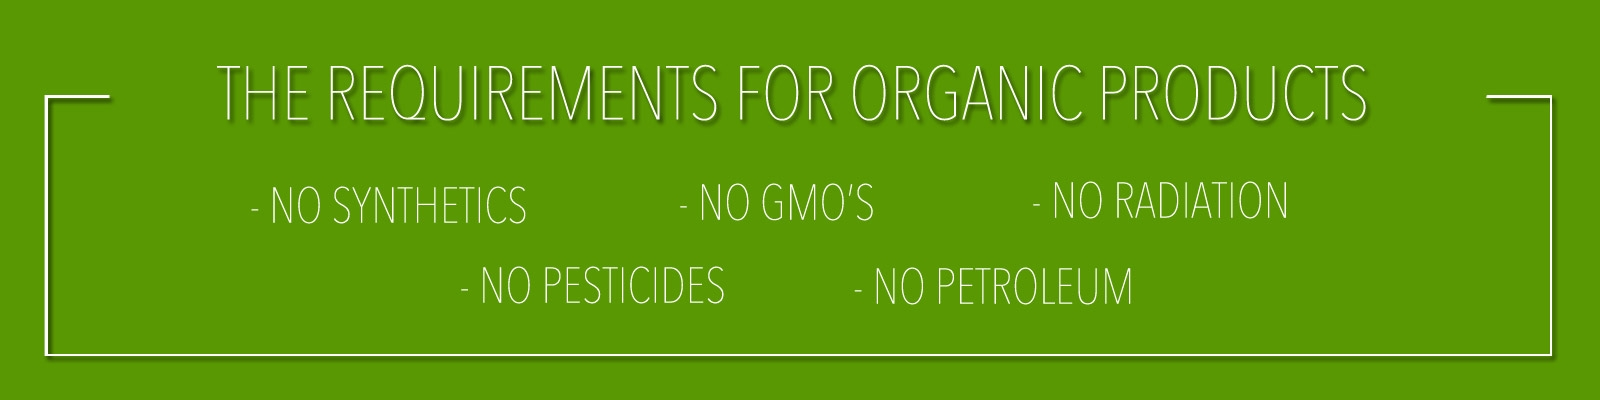 The Requirements For Organic Products